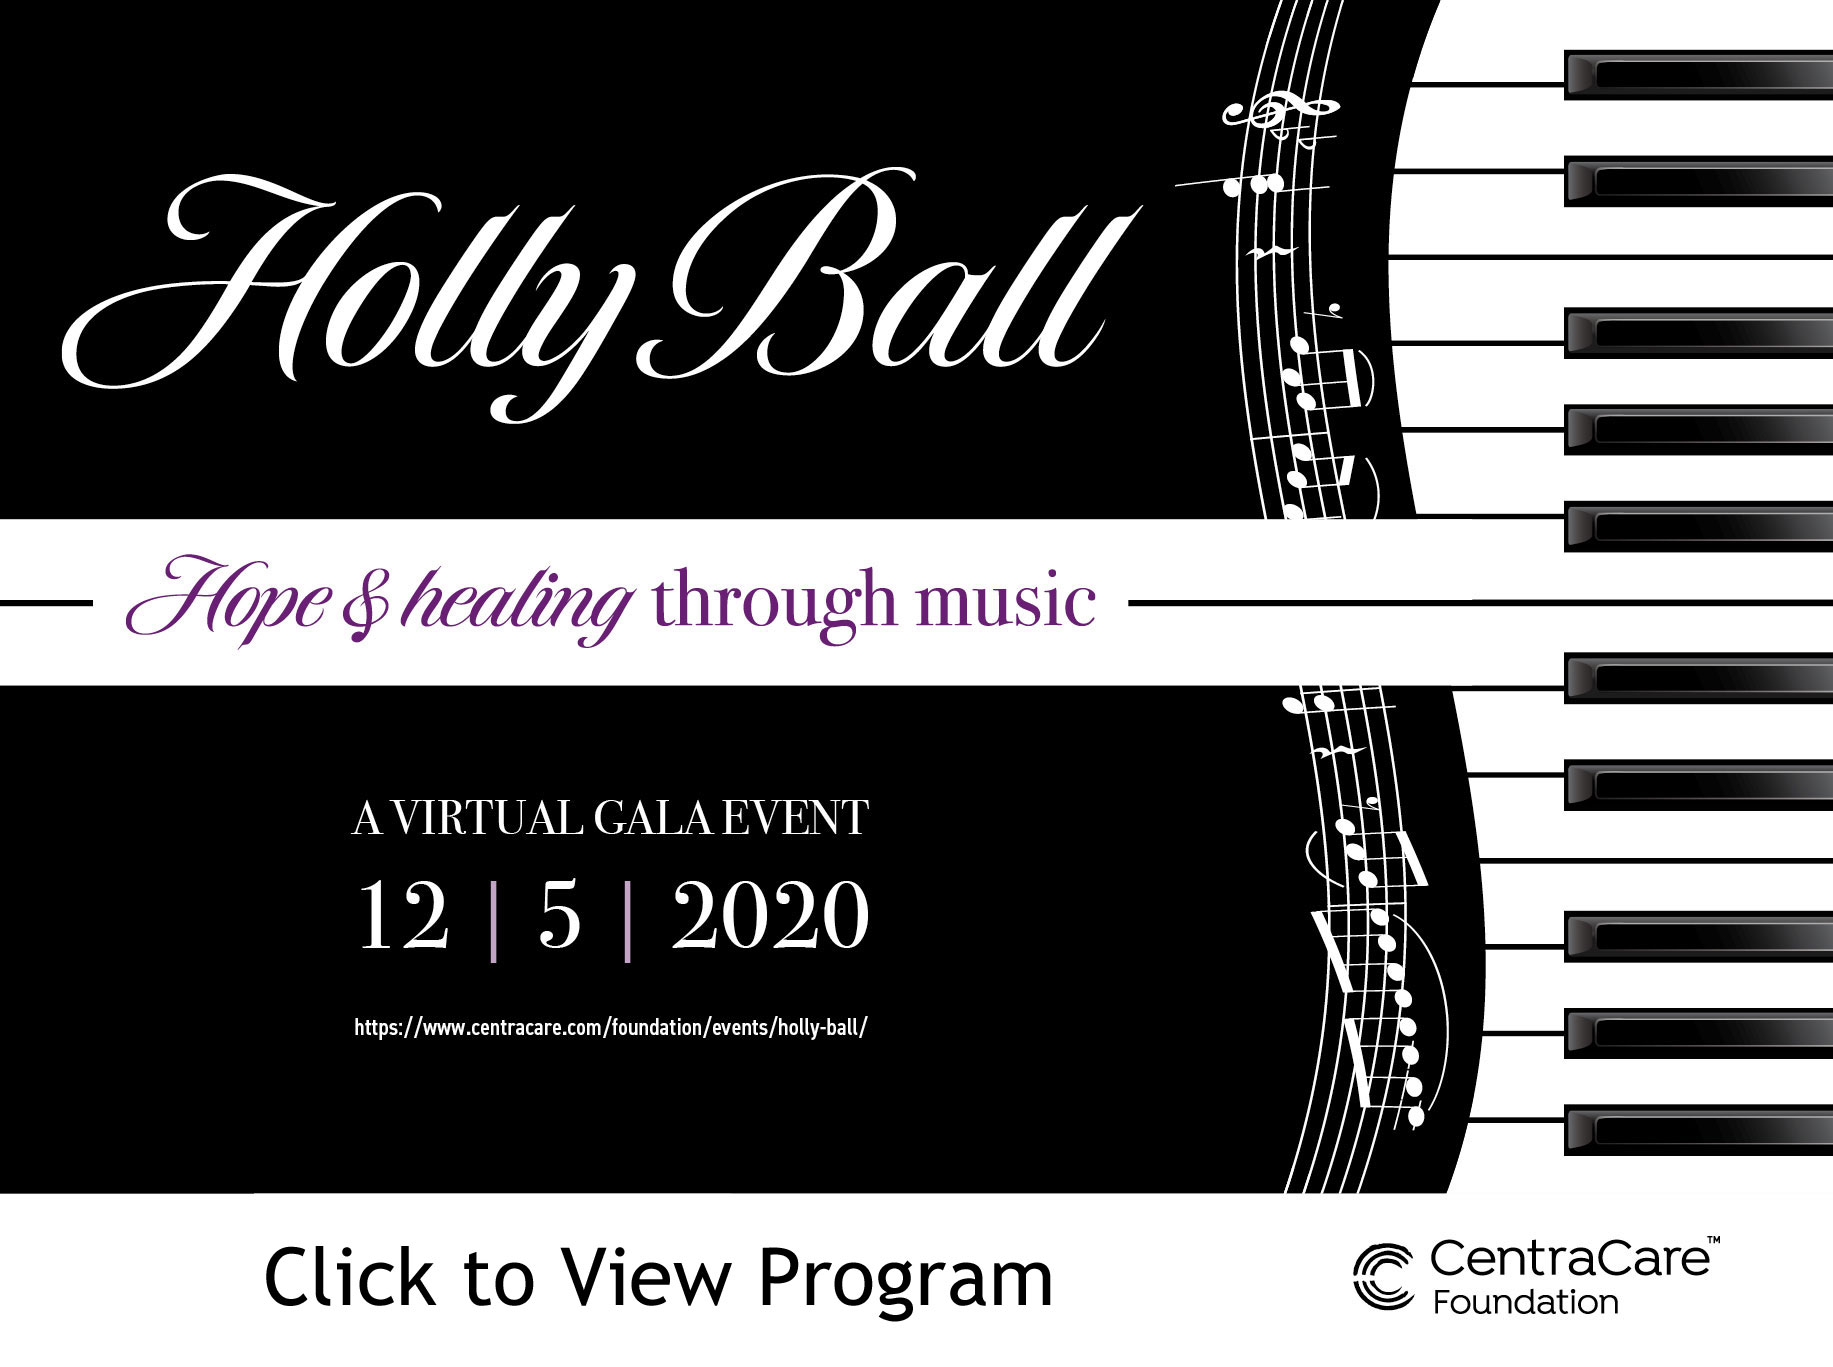 Holly Ball Program